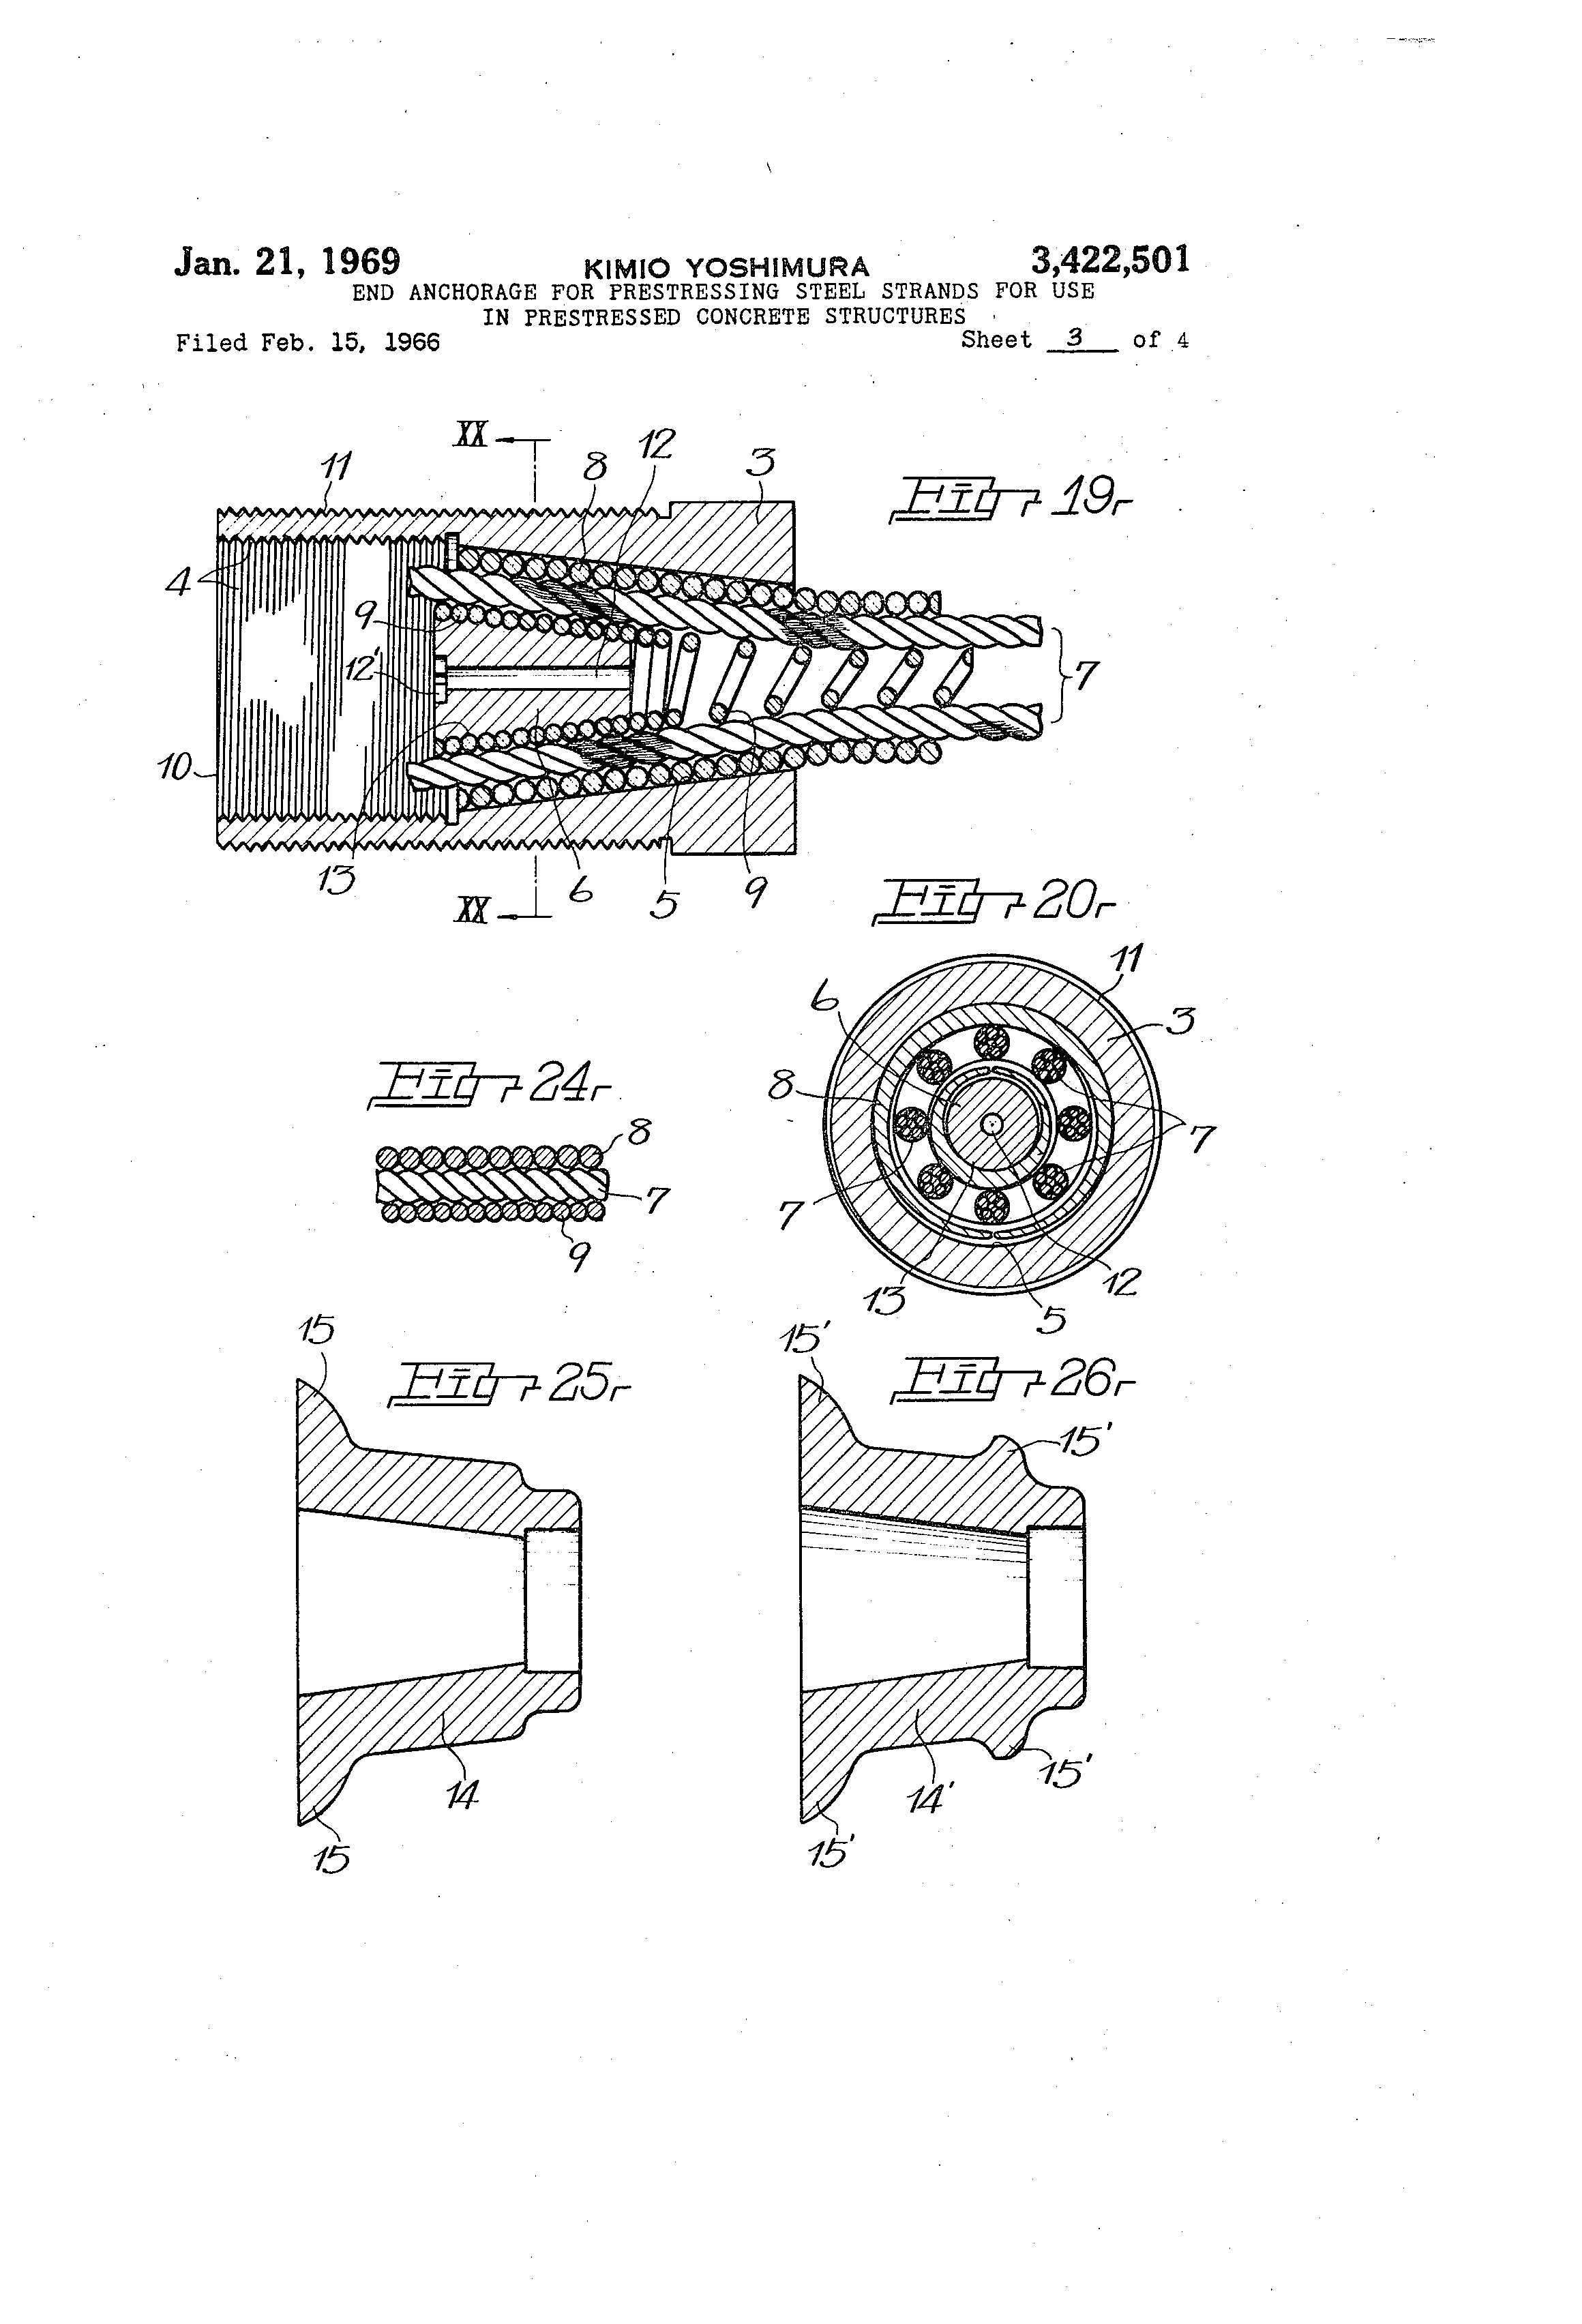 Patent US3422501 - End anchorage for prestressing steel strands for